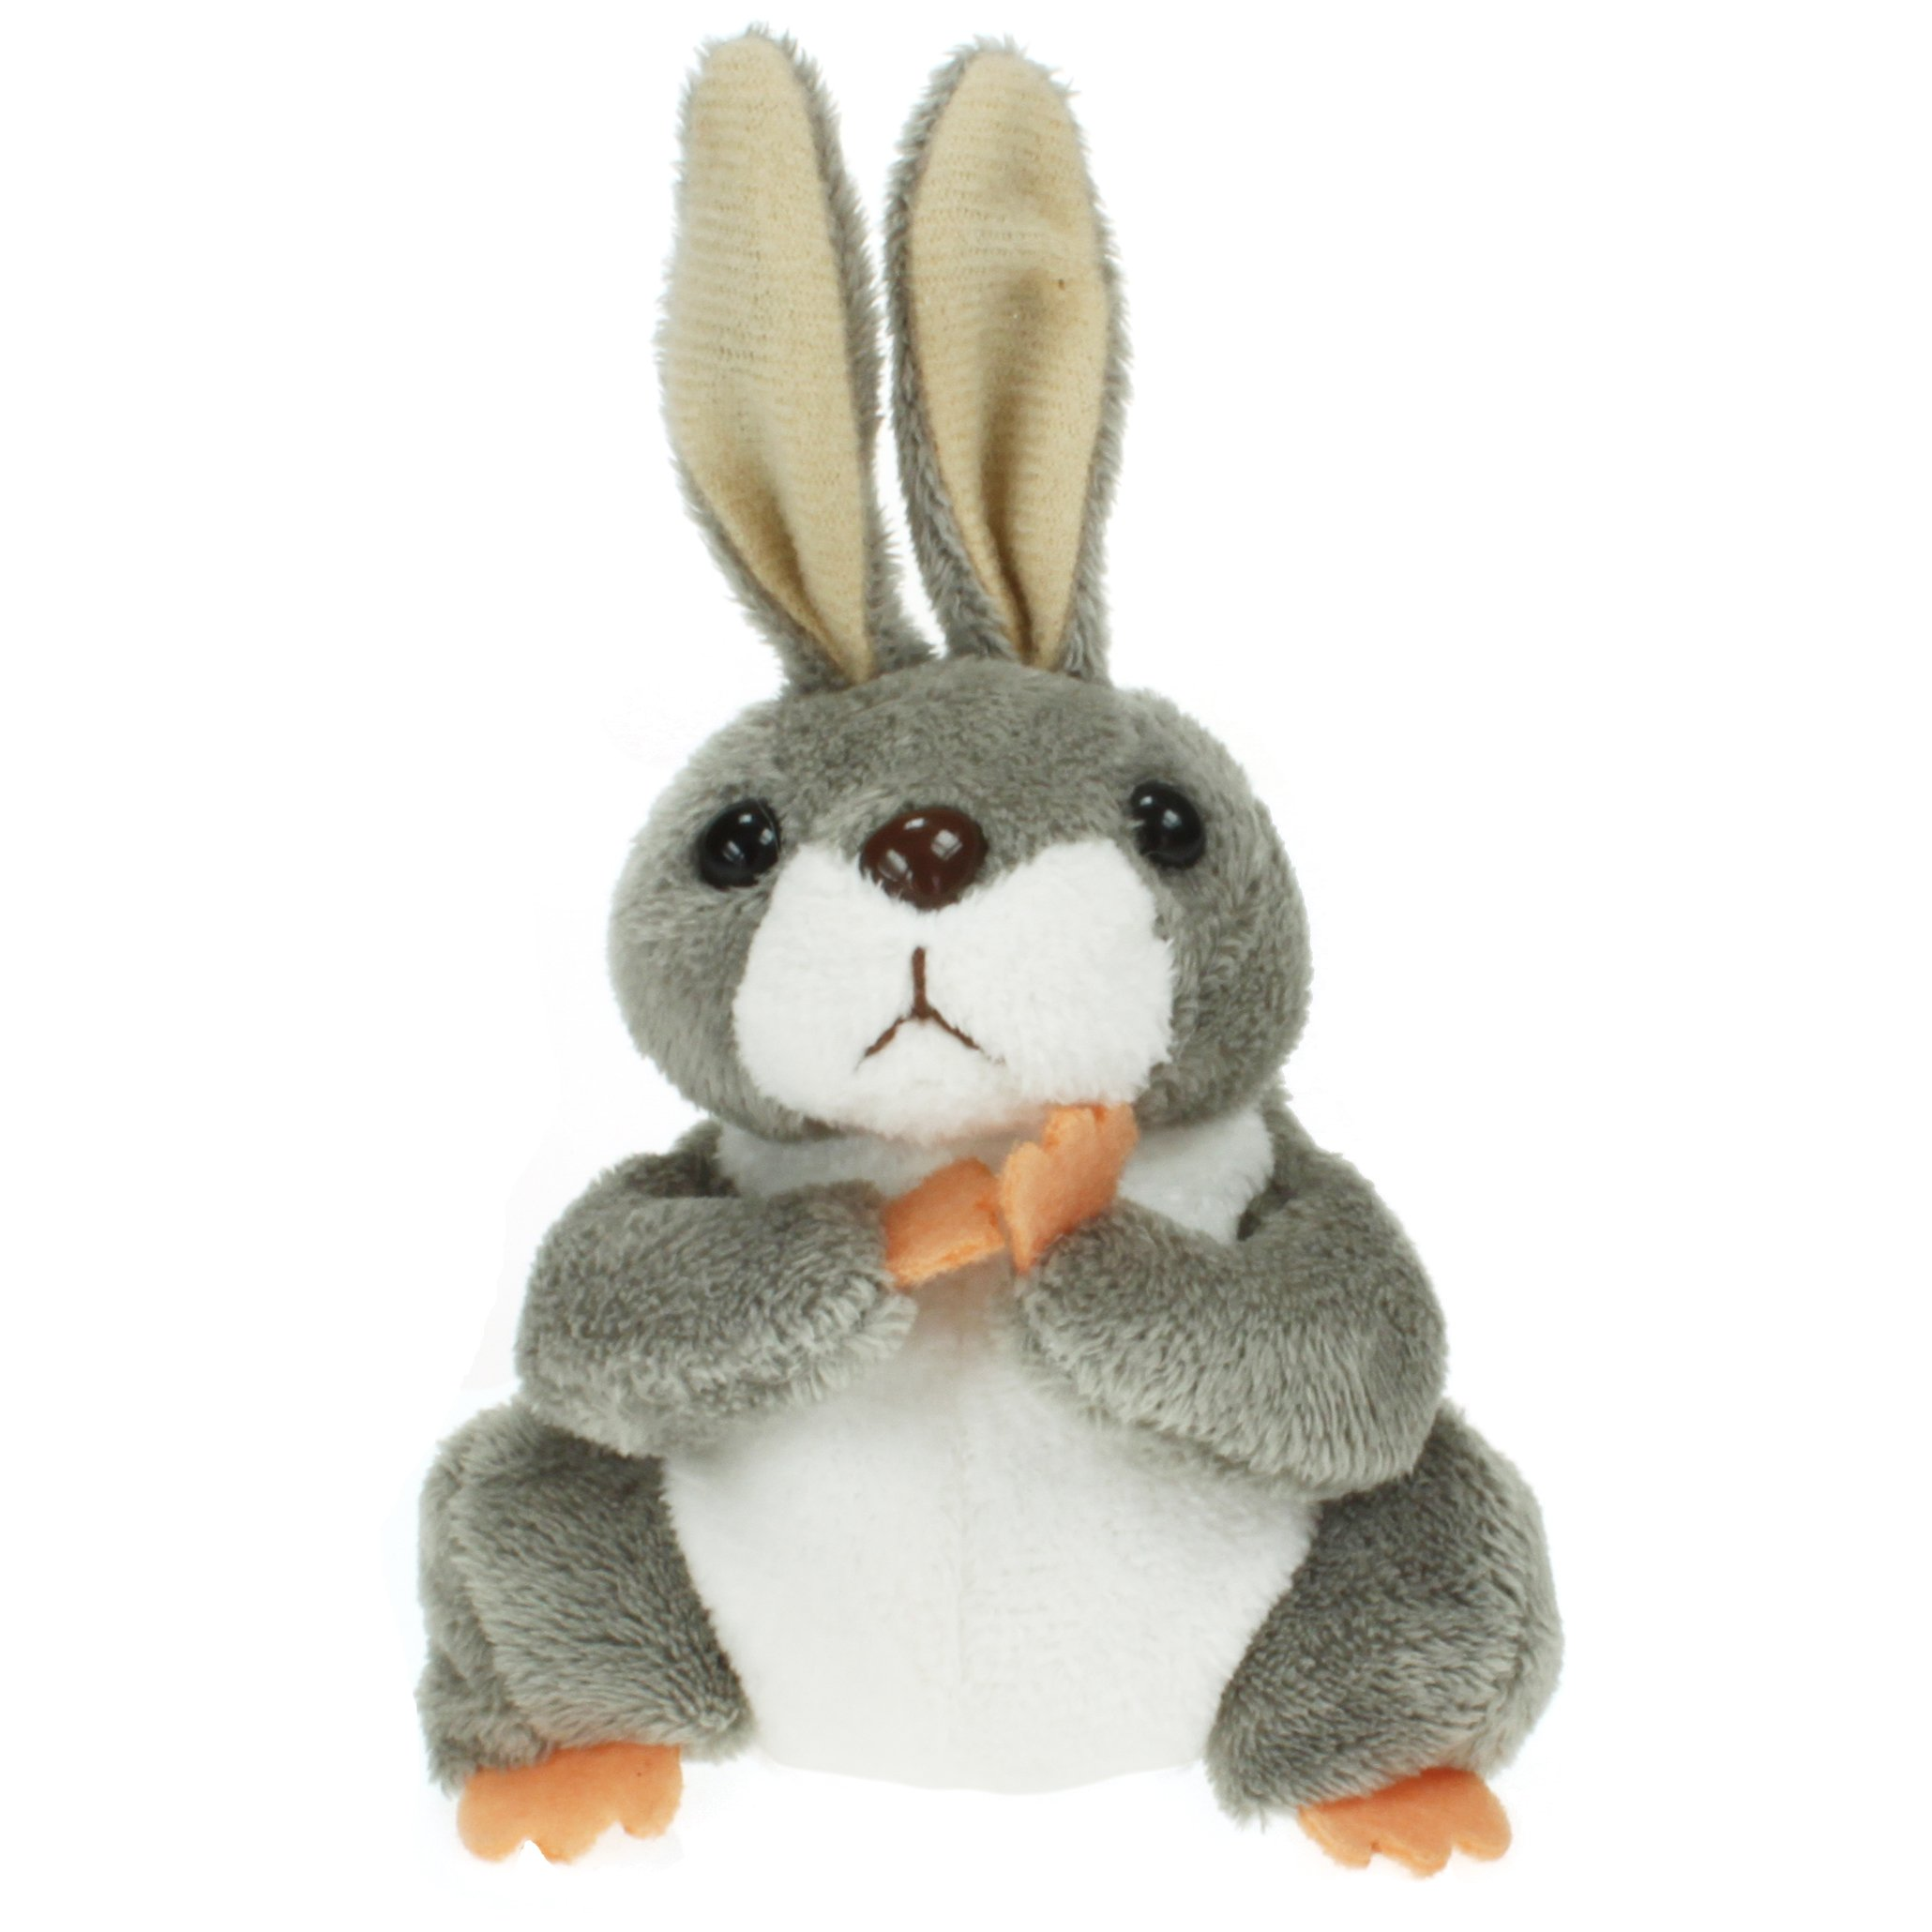 The Puppet Company Rabbit Finger Children Toys Puppets, Grey